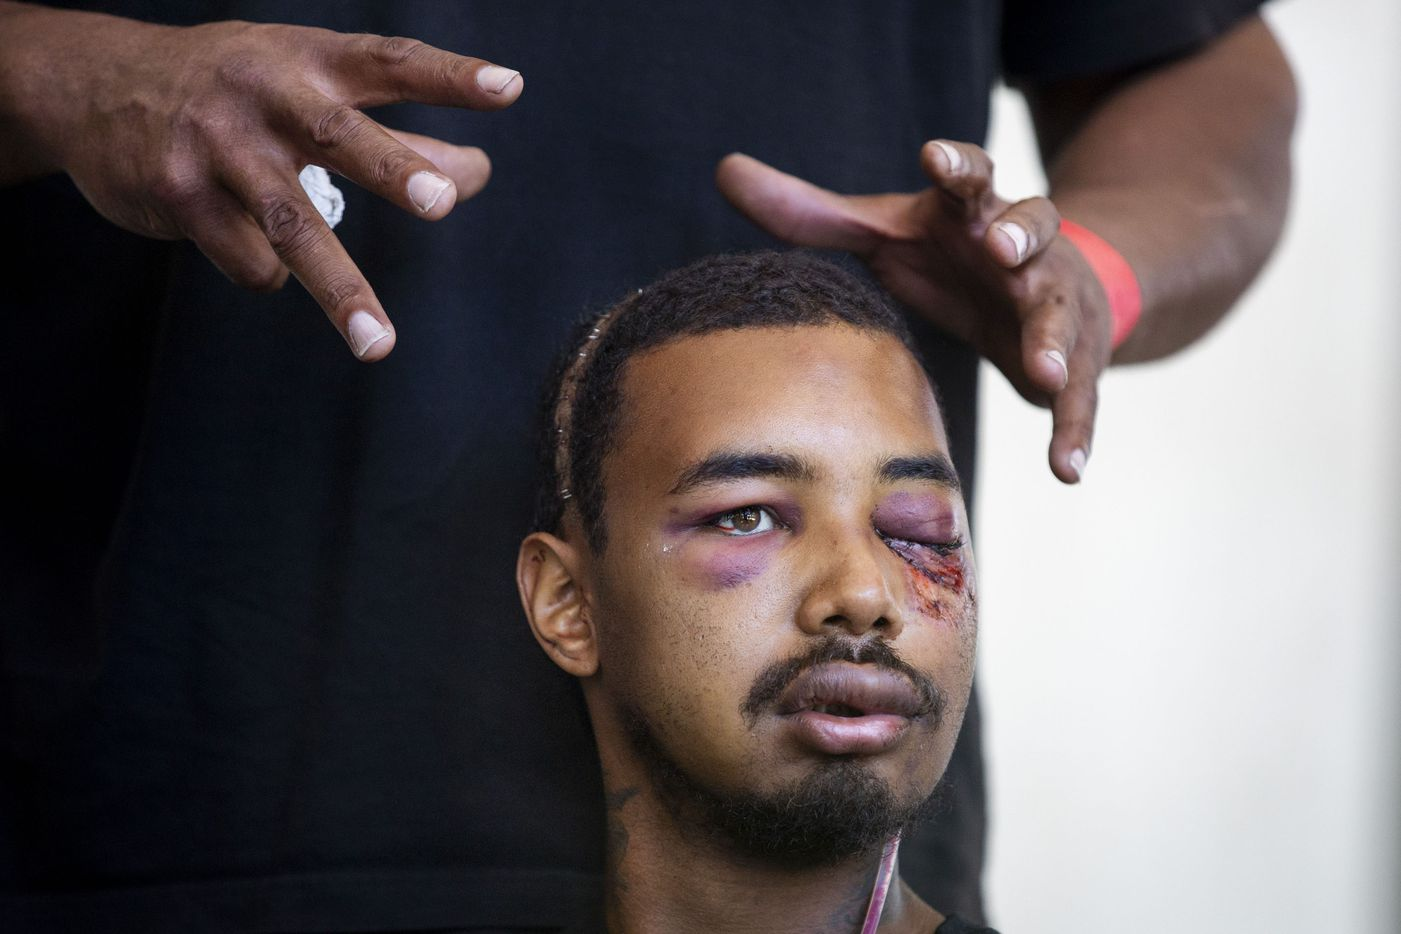 The hands of Andre Ray gesture at the severe injuries sustained in the left eye and head by his son, Brandon Saenz, 26, from less lethal ammunition fired by Dallas Police at this past weekendÕs protests during a press conference in downtown Dallas on Wednesday, June 3, 2020. Saenz lost his left eye and has had to have metal plates put in his head. Law enforcement used various crowd control weapons throughout last weekend as hundreds of demonstrators took to the streets to denounce police brutality in response to the recent deaths of George Floyd in Minneapolis and Breonna Taylor in Louisville.